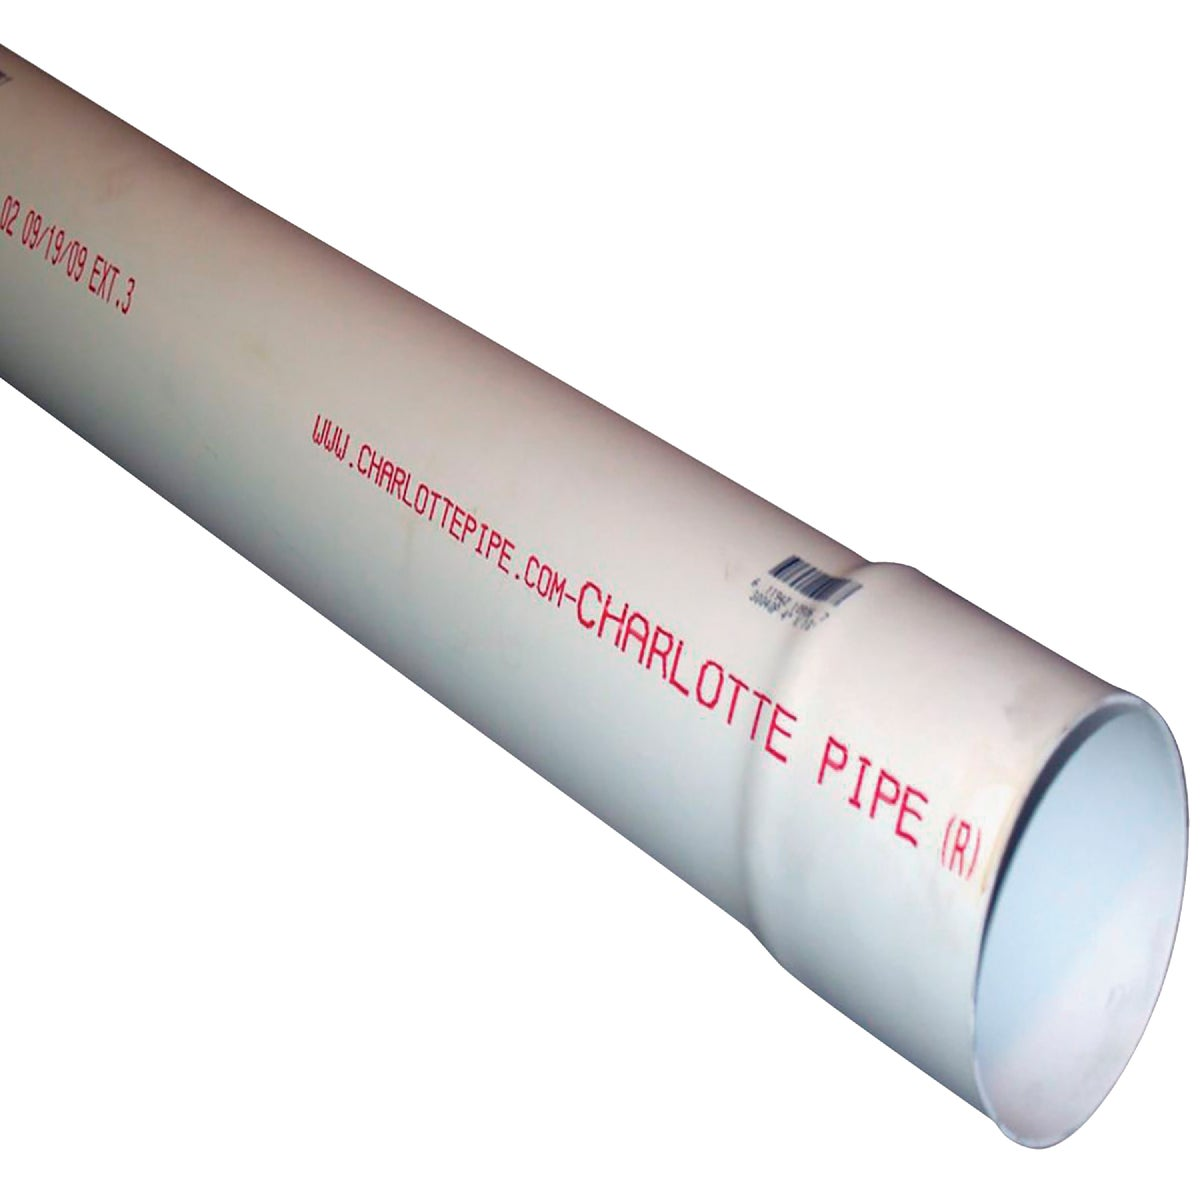 3X10' D&S SOLID PVC PIPE - 40030 by Genova Inc